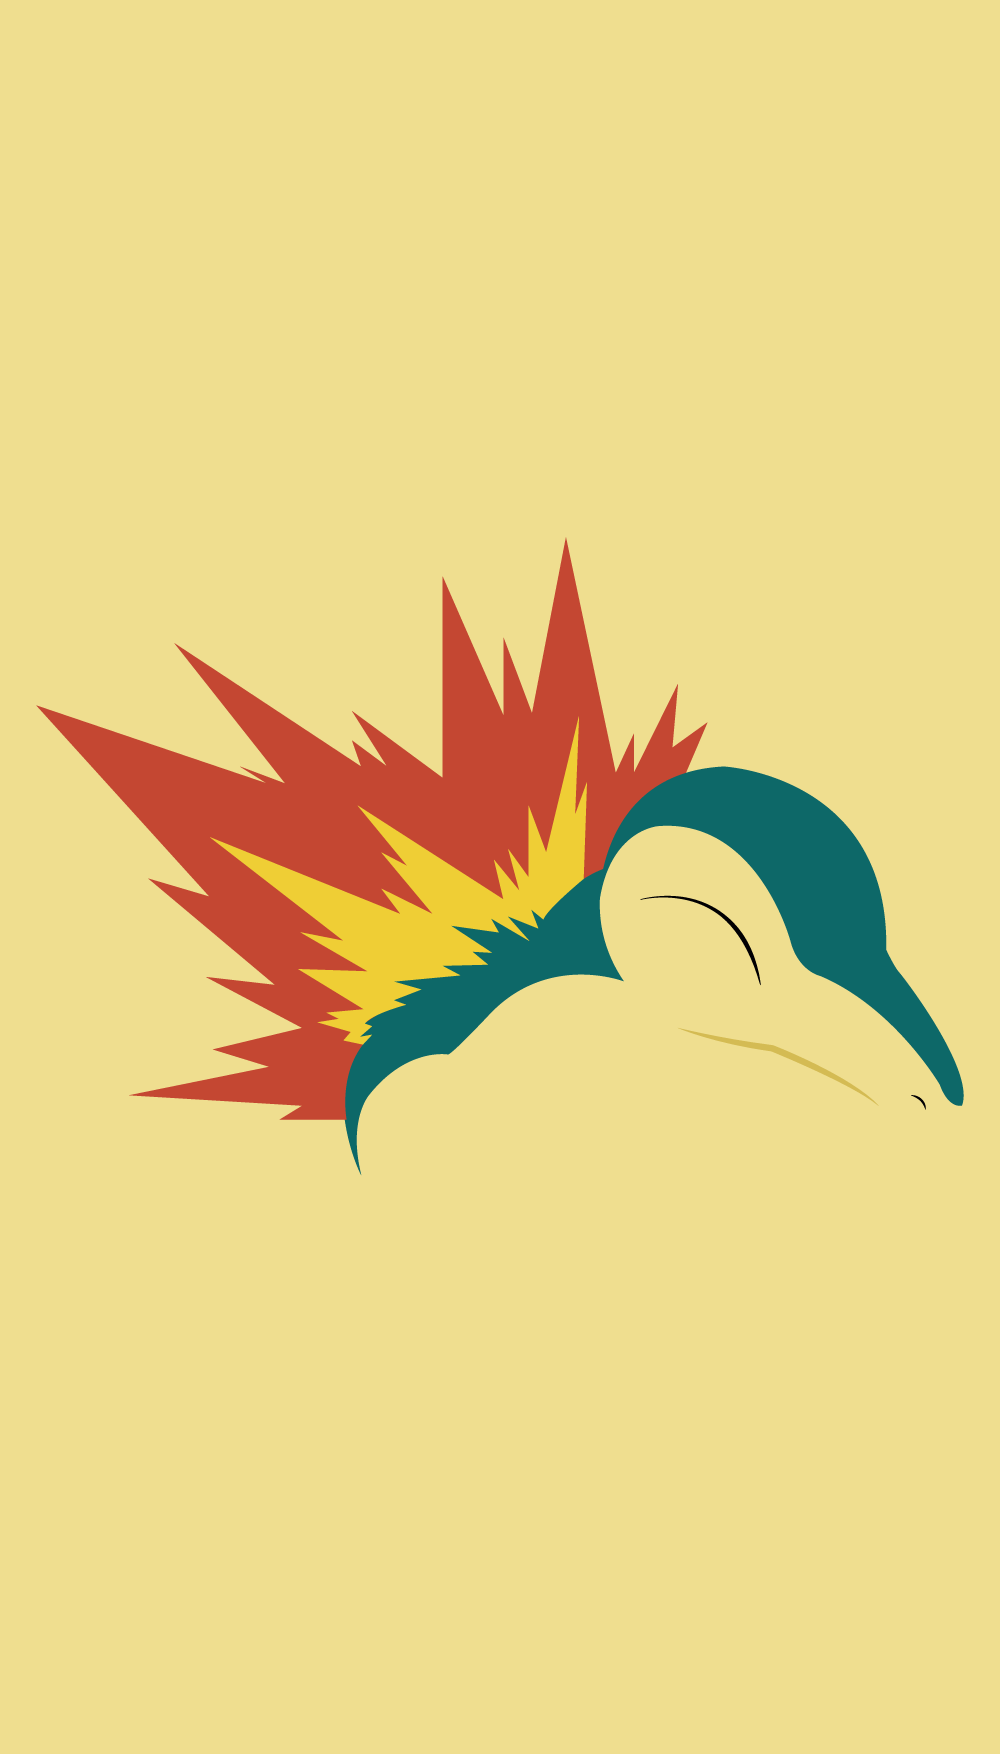 Cyndaquil HD Wallpapers - Wallpaper Cave Cyndaquil Wallpaper